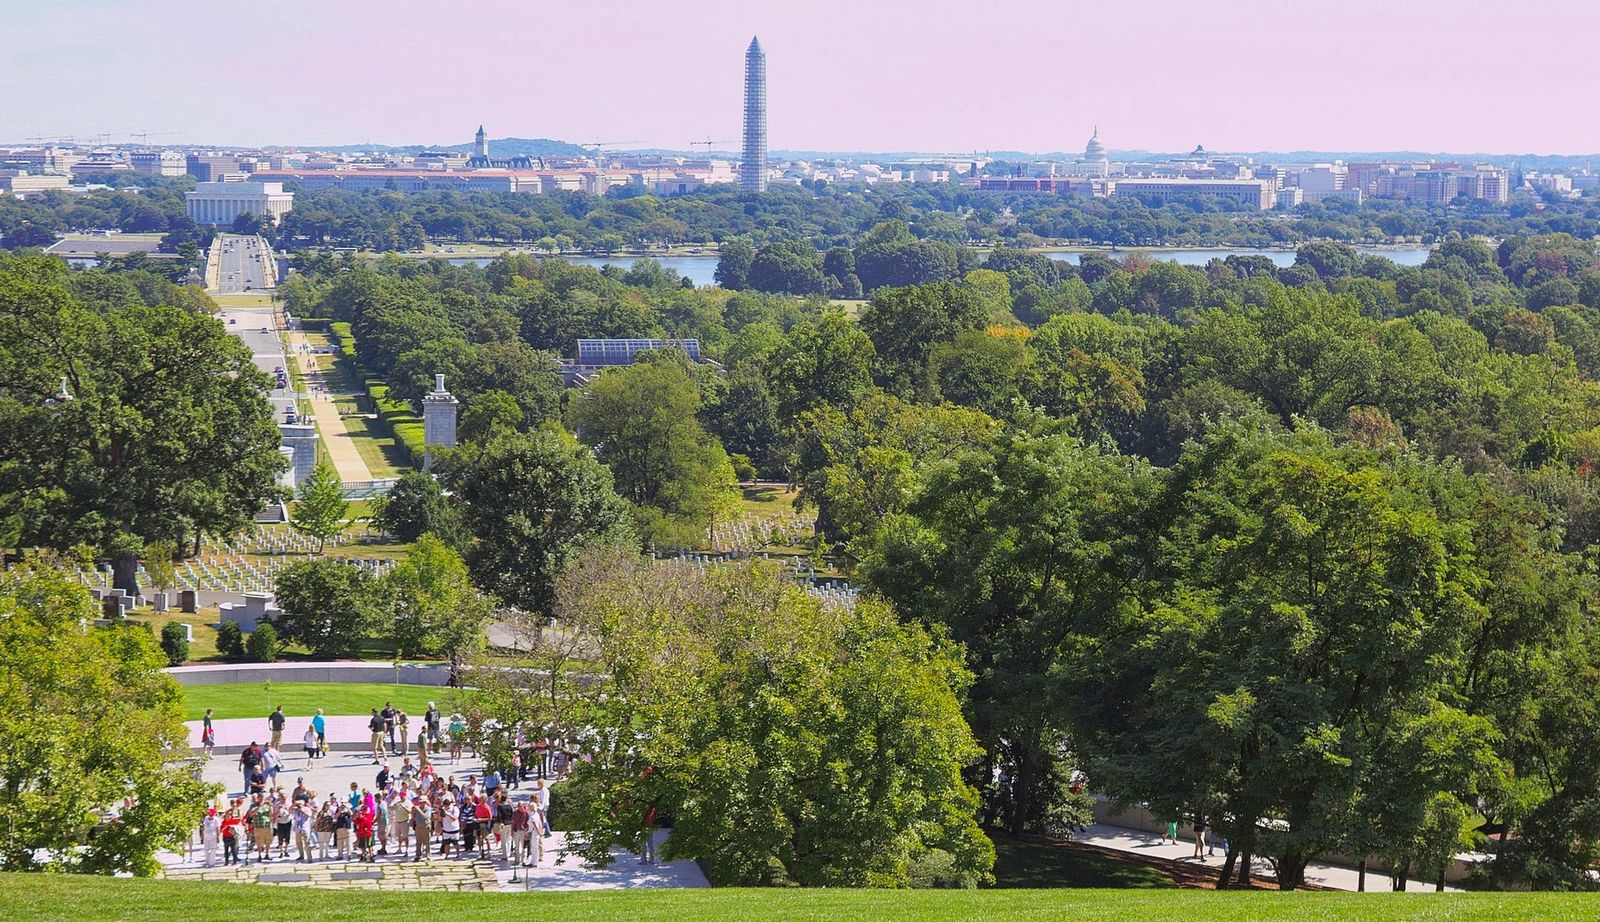 El National Mall, desde Arlington House